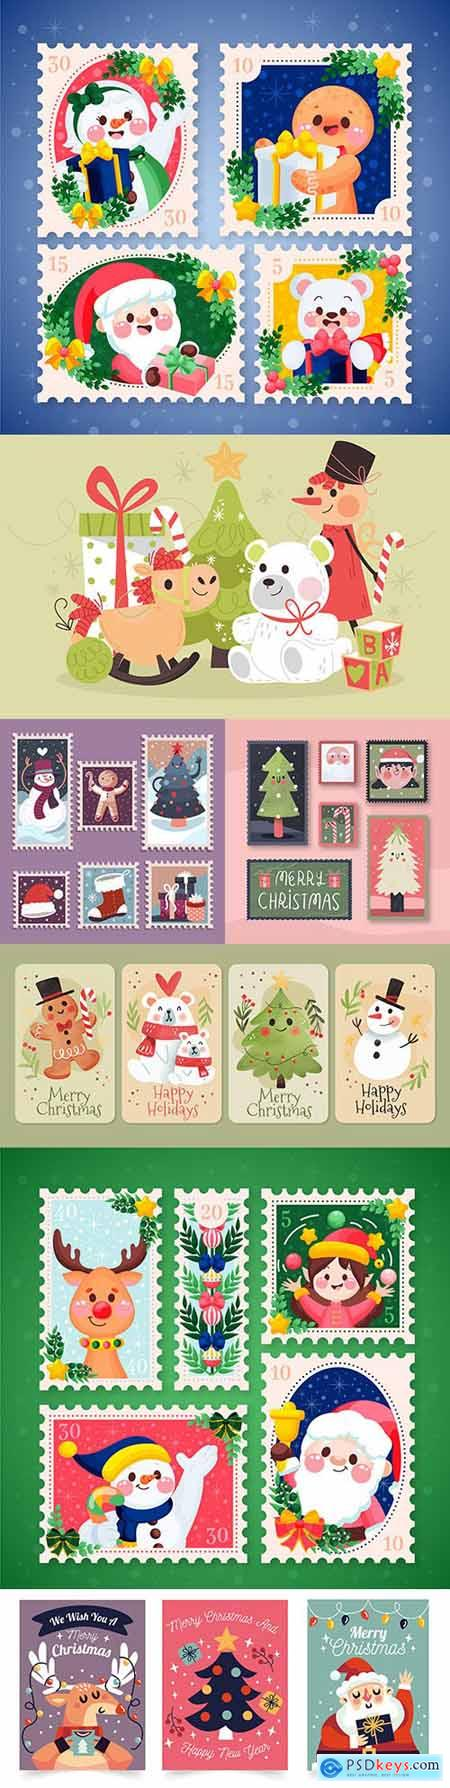 Christmas stamps and postcards flat design collection painted